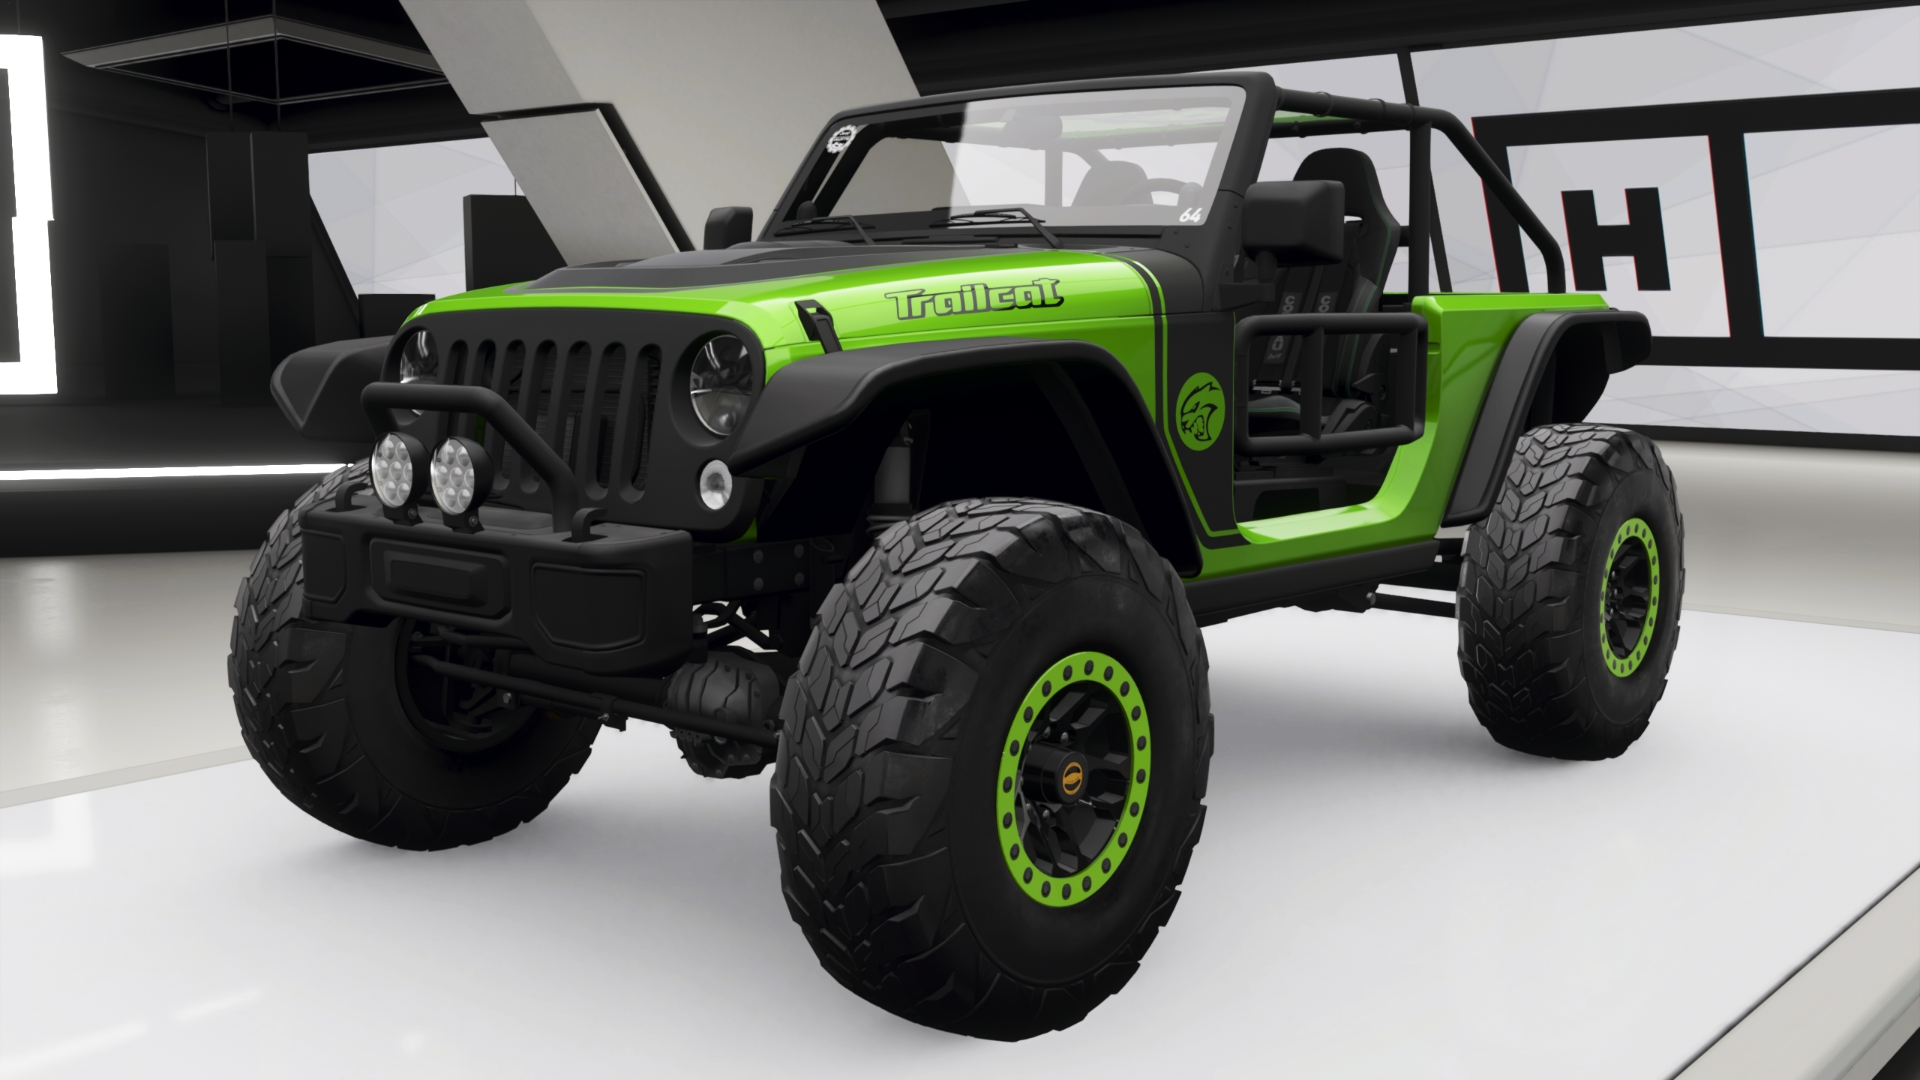 Jeep Trailcat Forza Motorsport Wiki Fandom Powered By Wikia